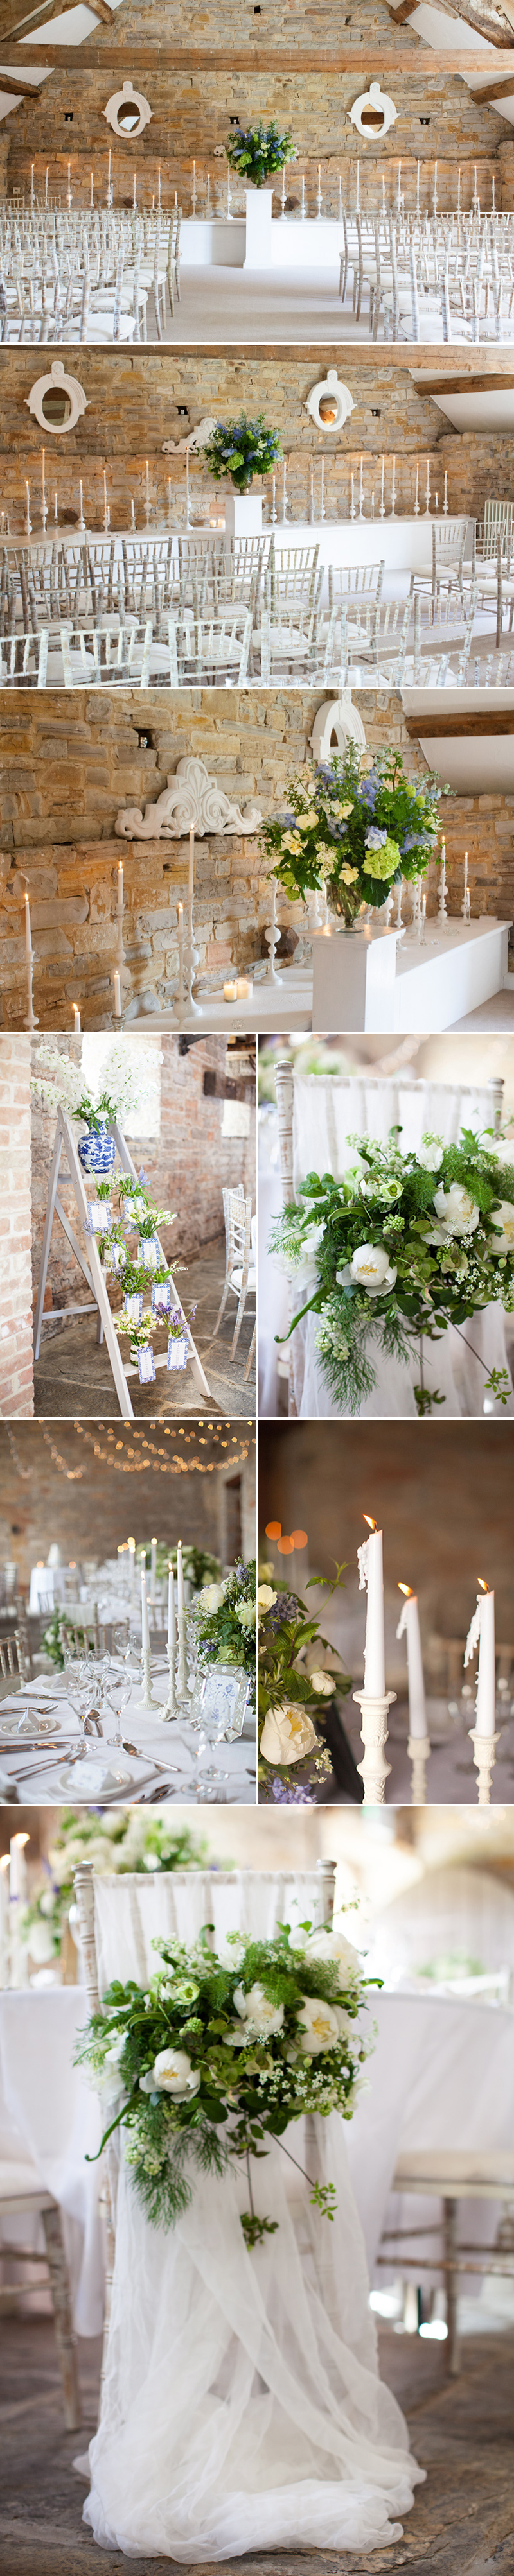 rustic-romance-blue-spring-styled-shoot-almonry-barn-kerry-bartlett-photography-coco-wedding-venues-001